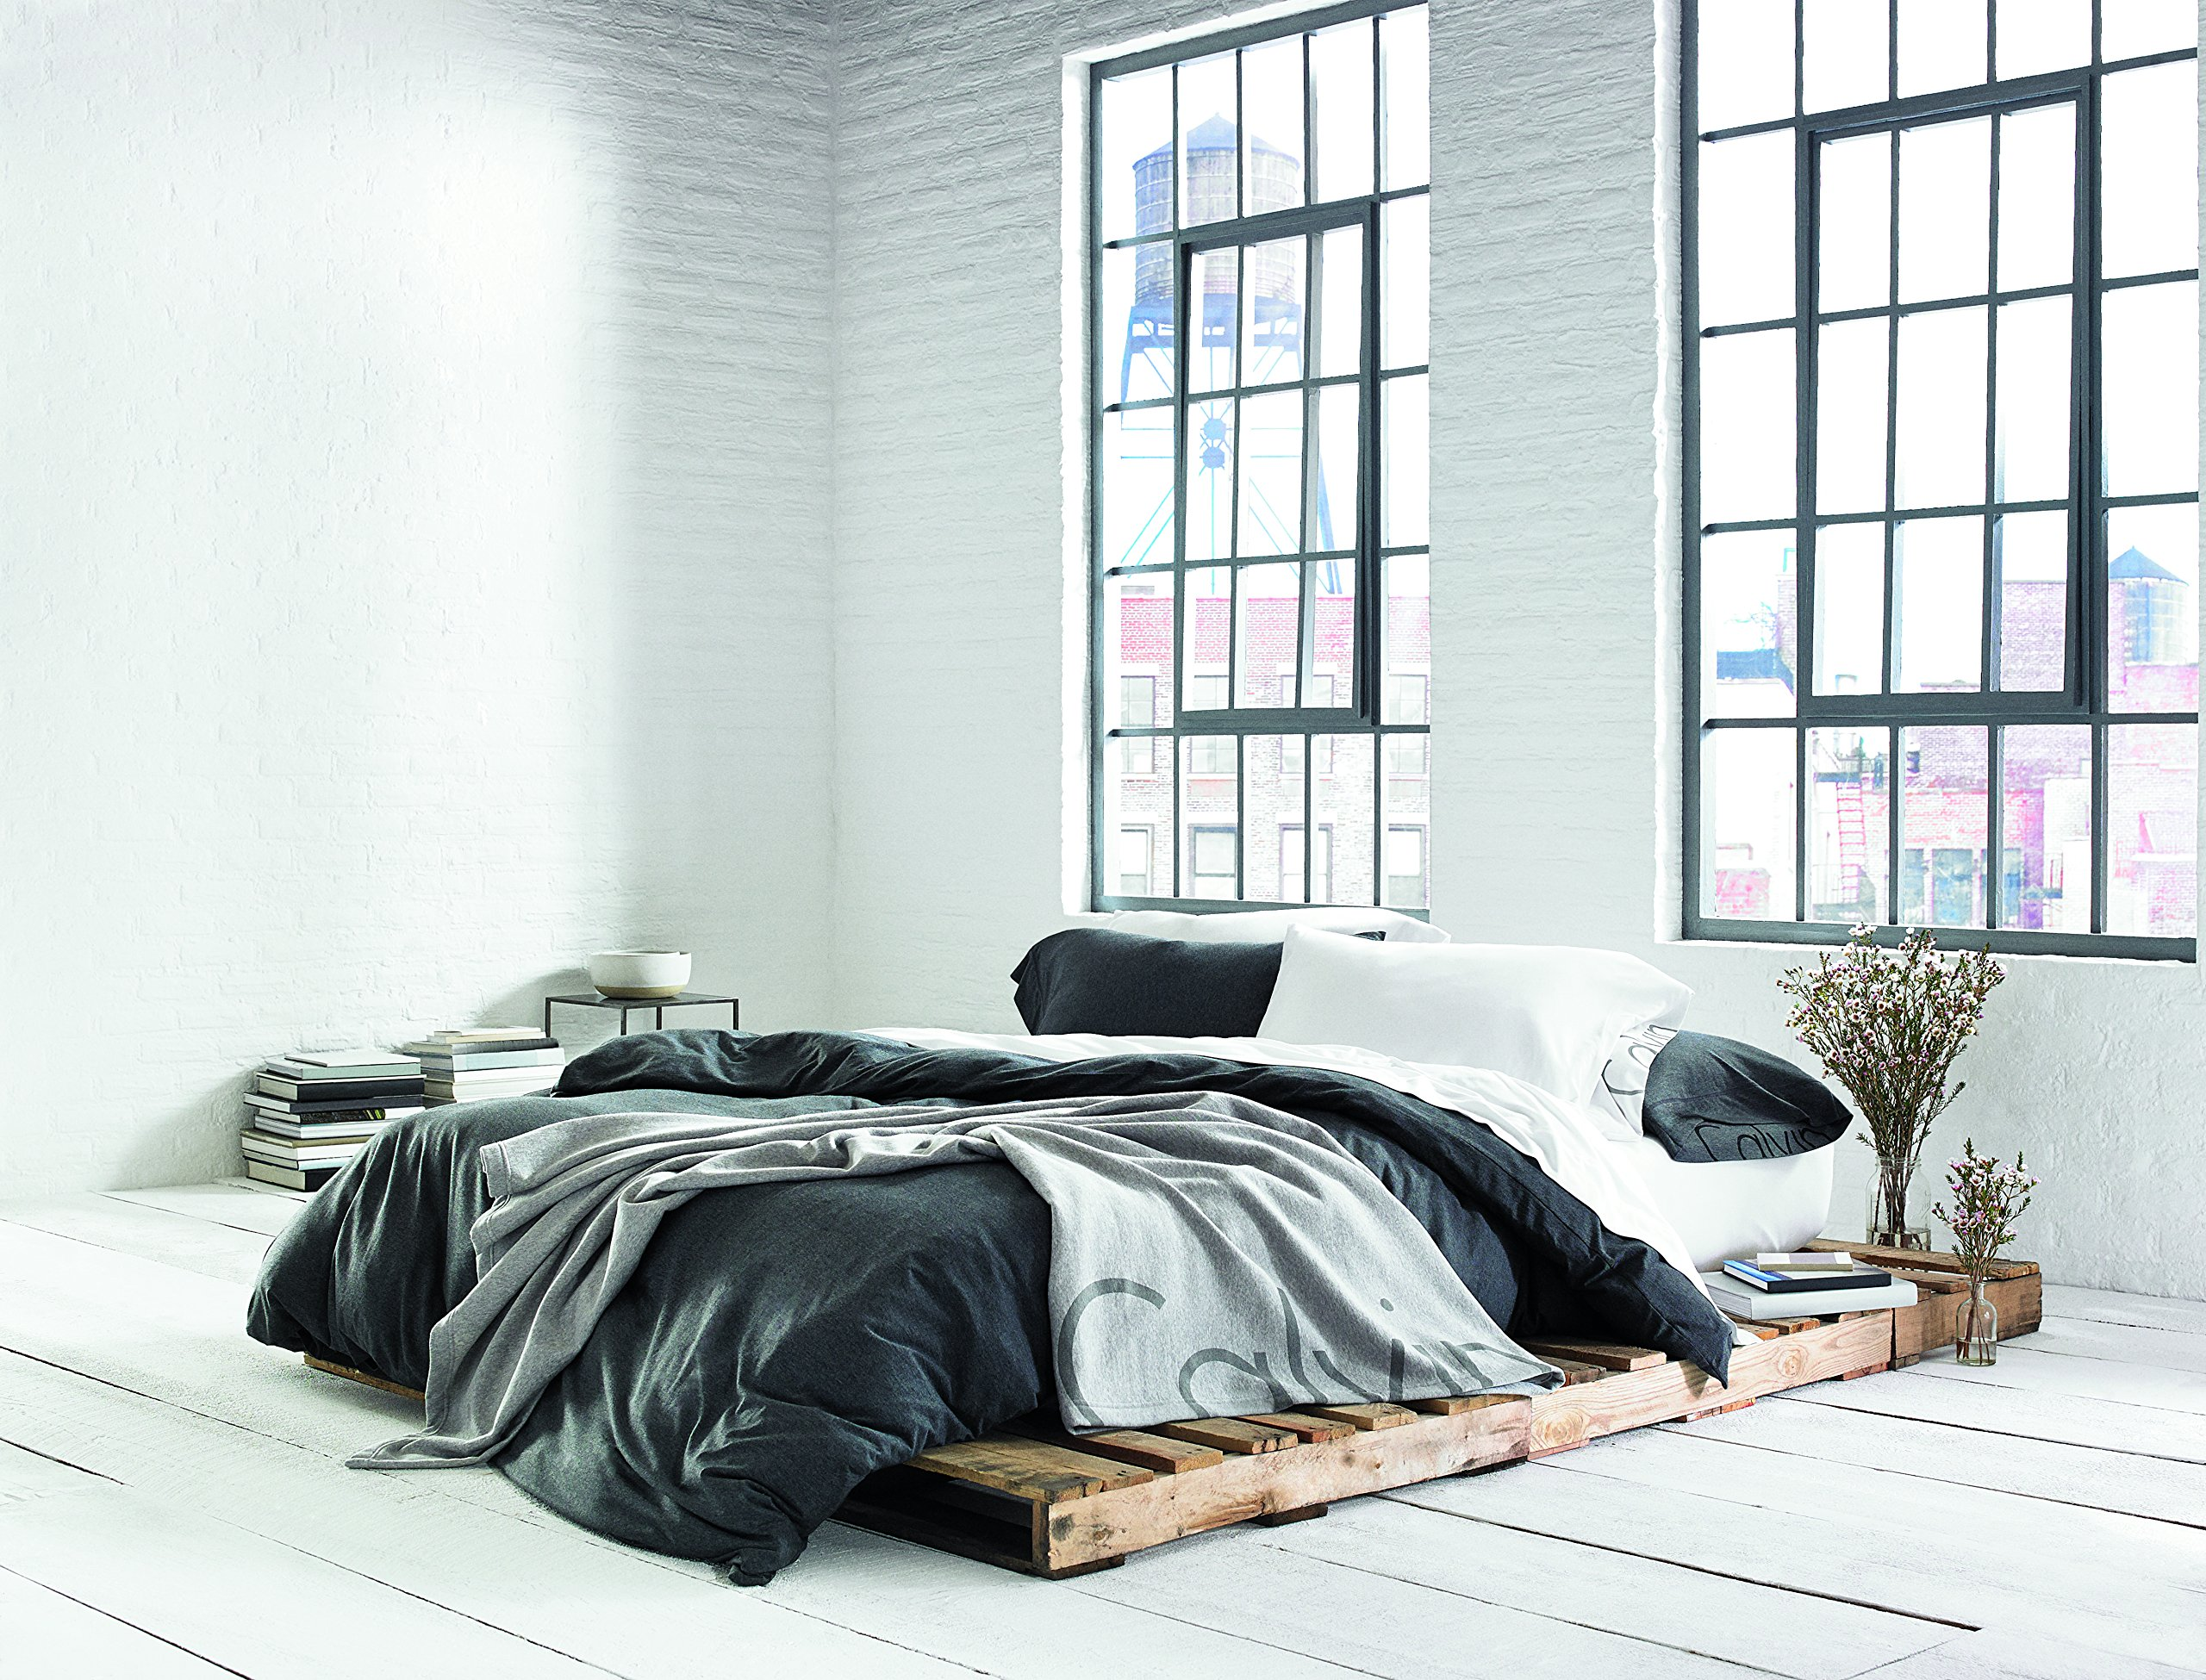 Calvin Klein Home Modern Cotton Body Duvet Cover, King, Charcoal by Calvin Klein (Image #6)